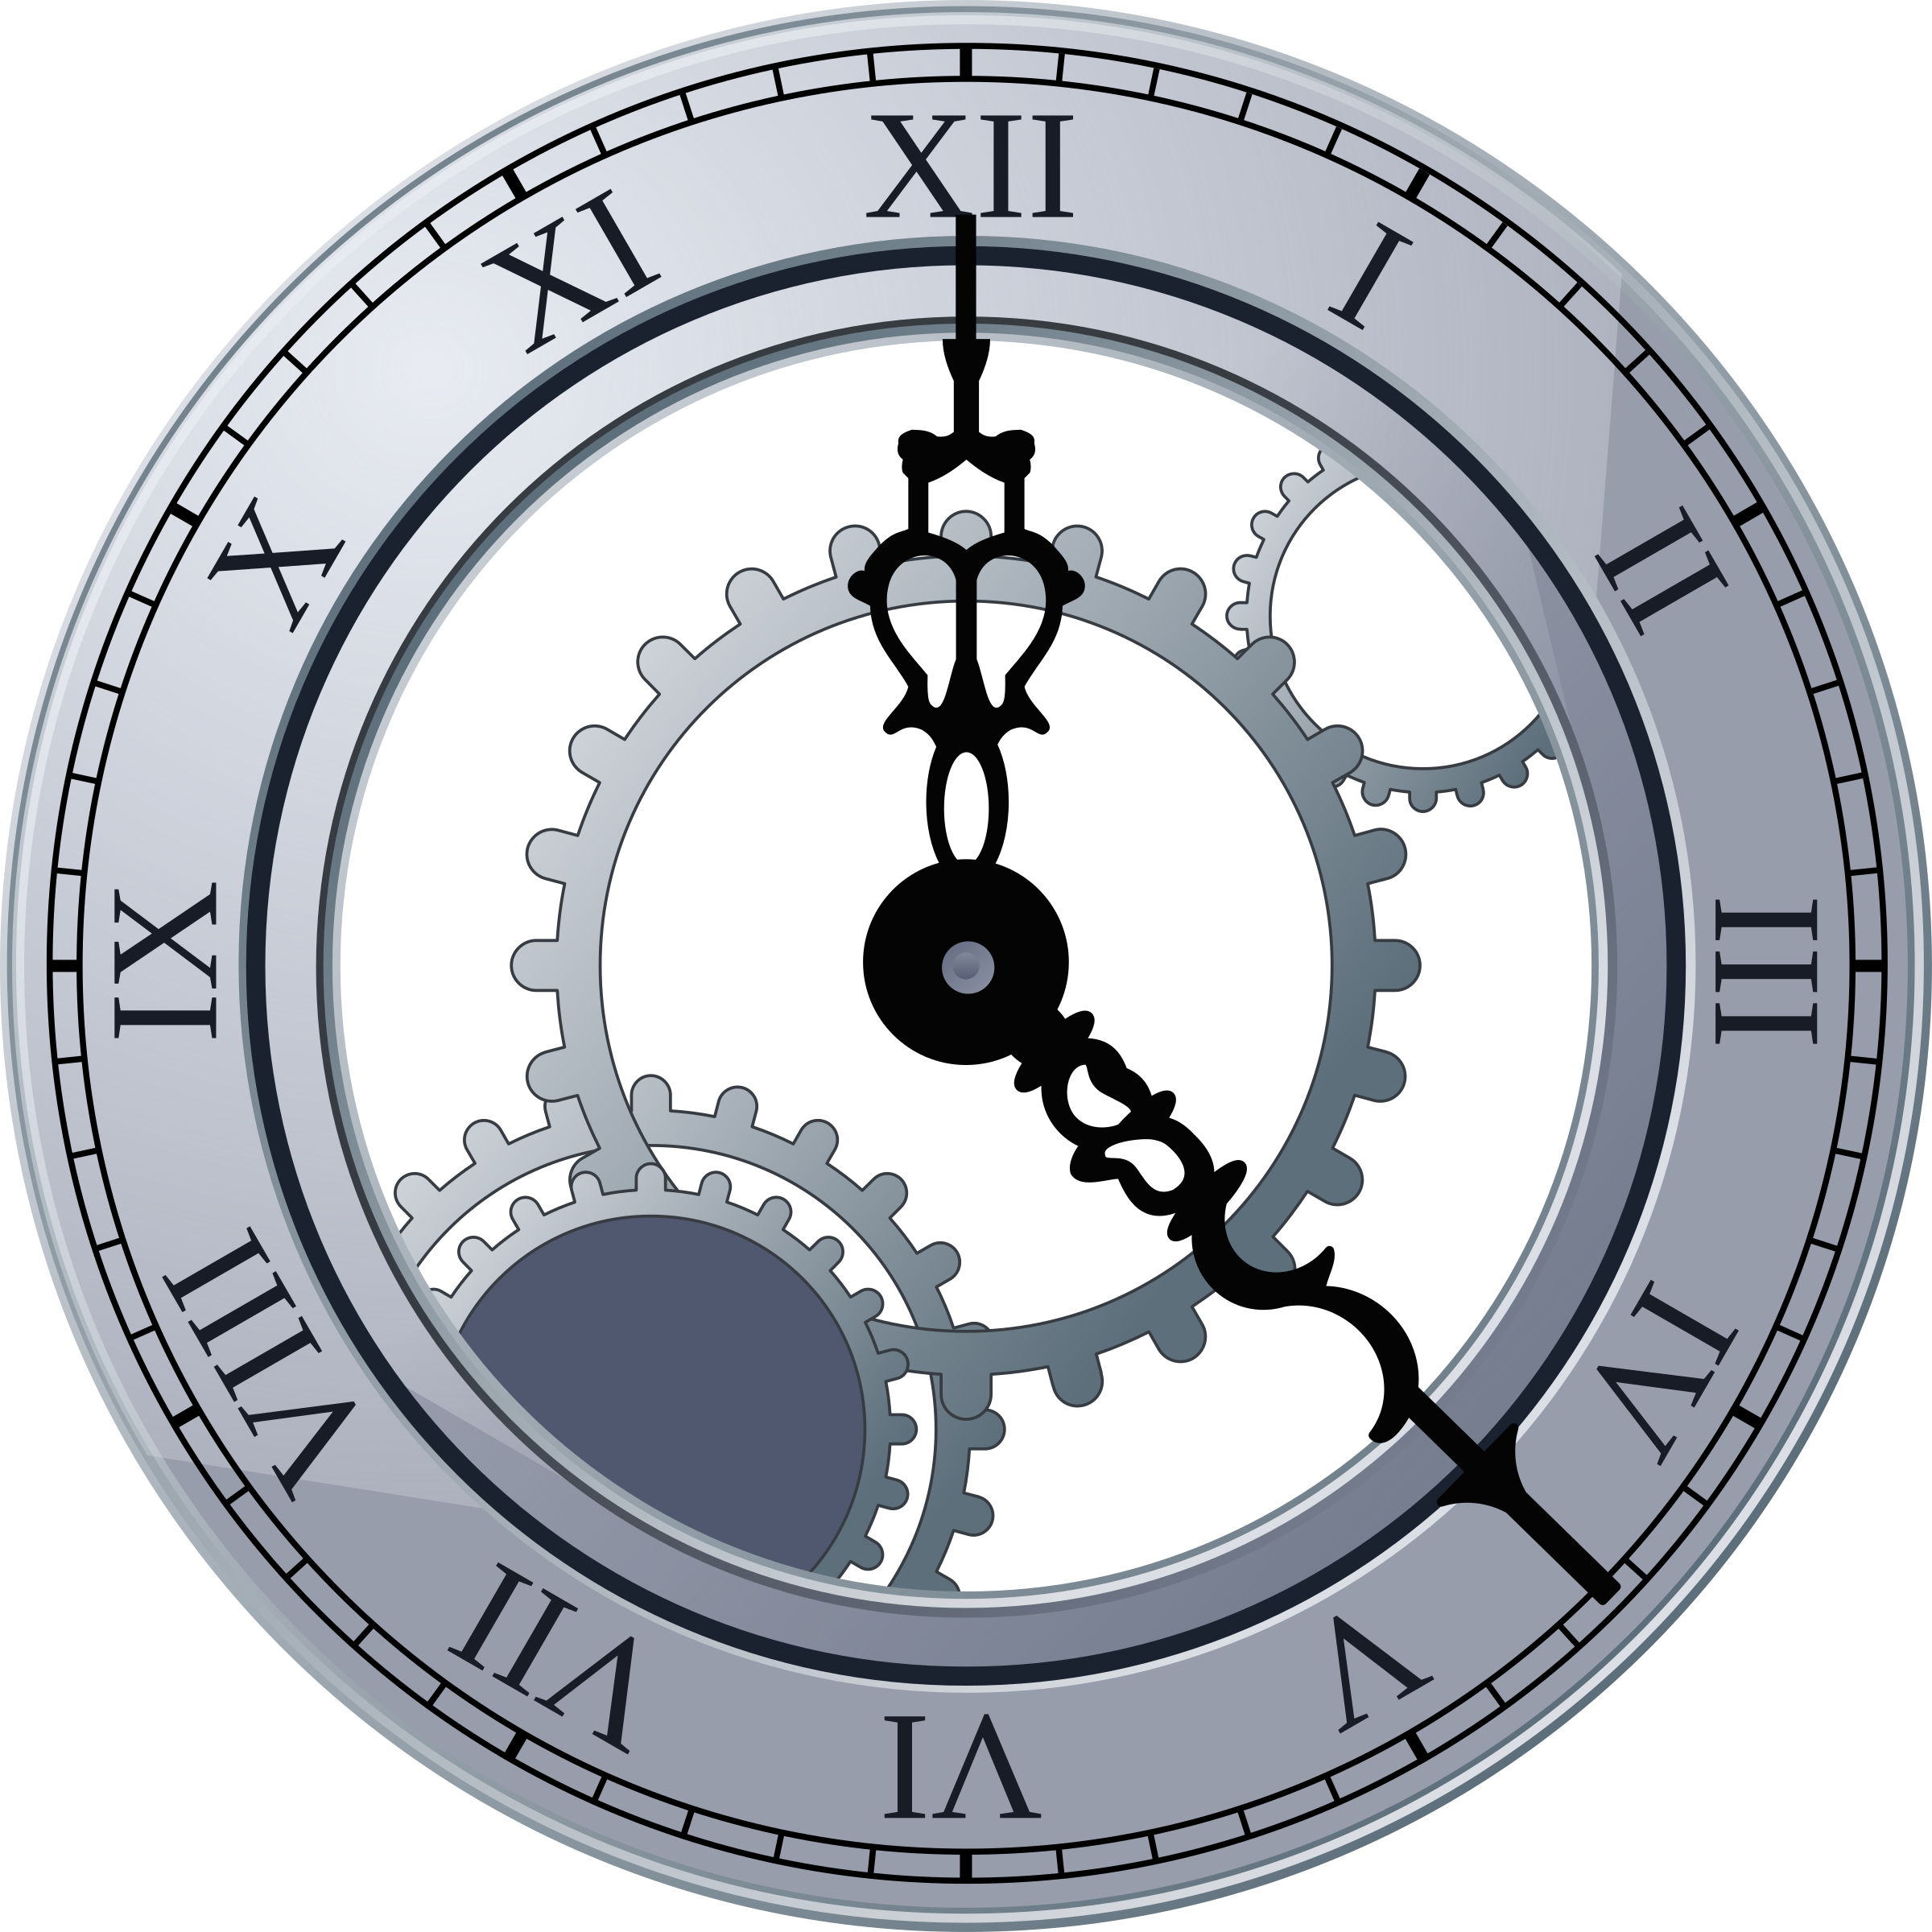 Drawing at getdrawings com. Steampunk clipart clock face